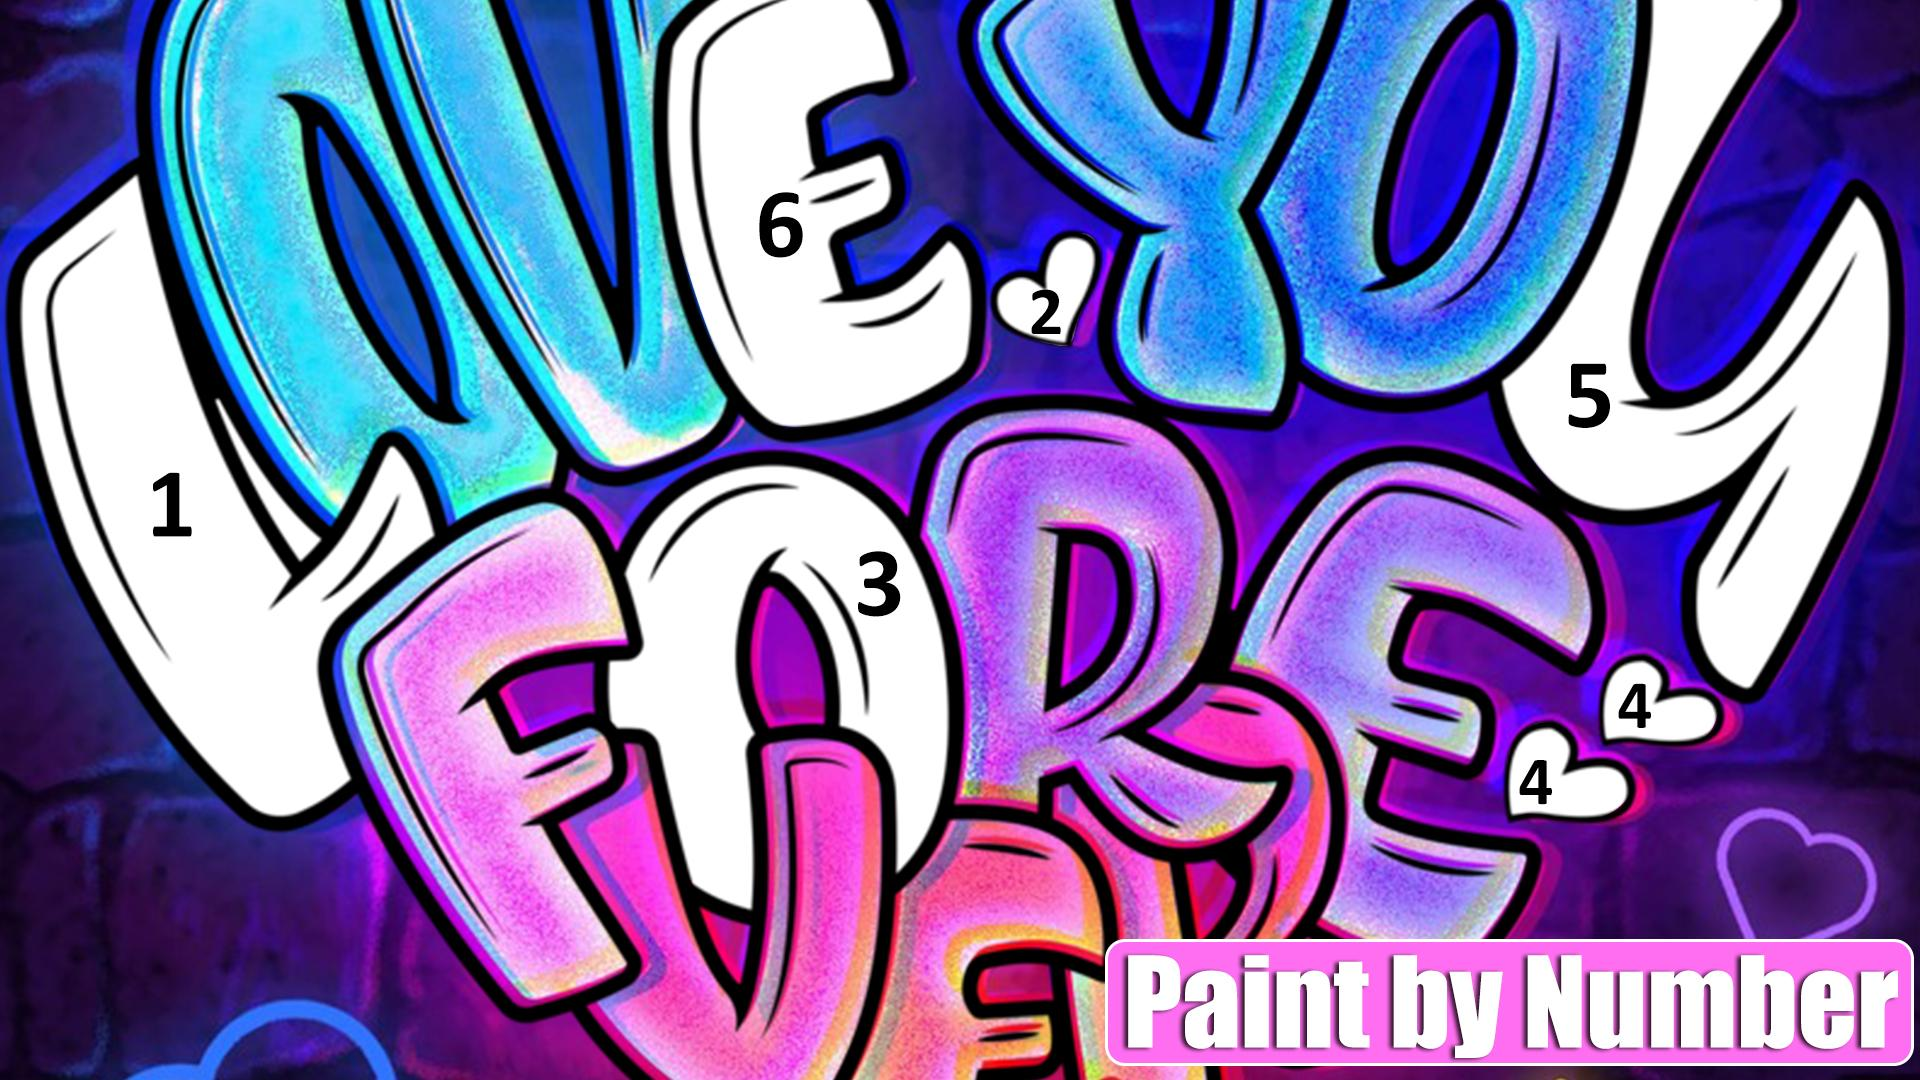 Paint By Number Free Coloring Book & Puzzle Game 2.36.2 Screenshot 15